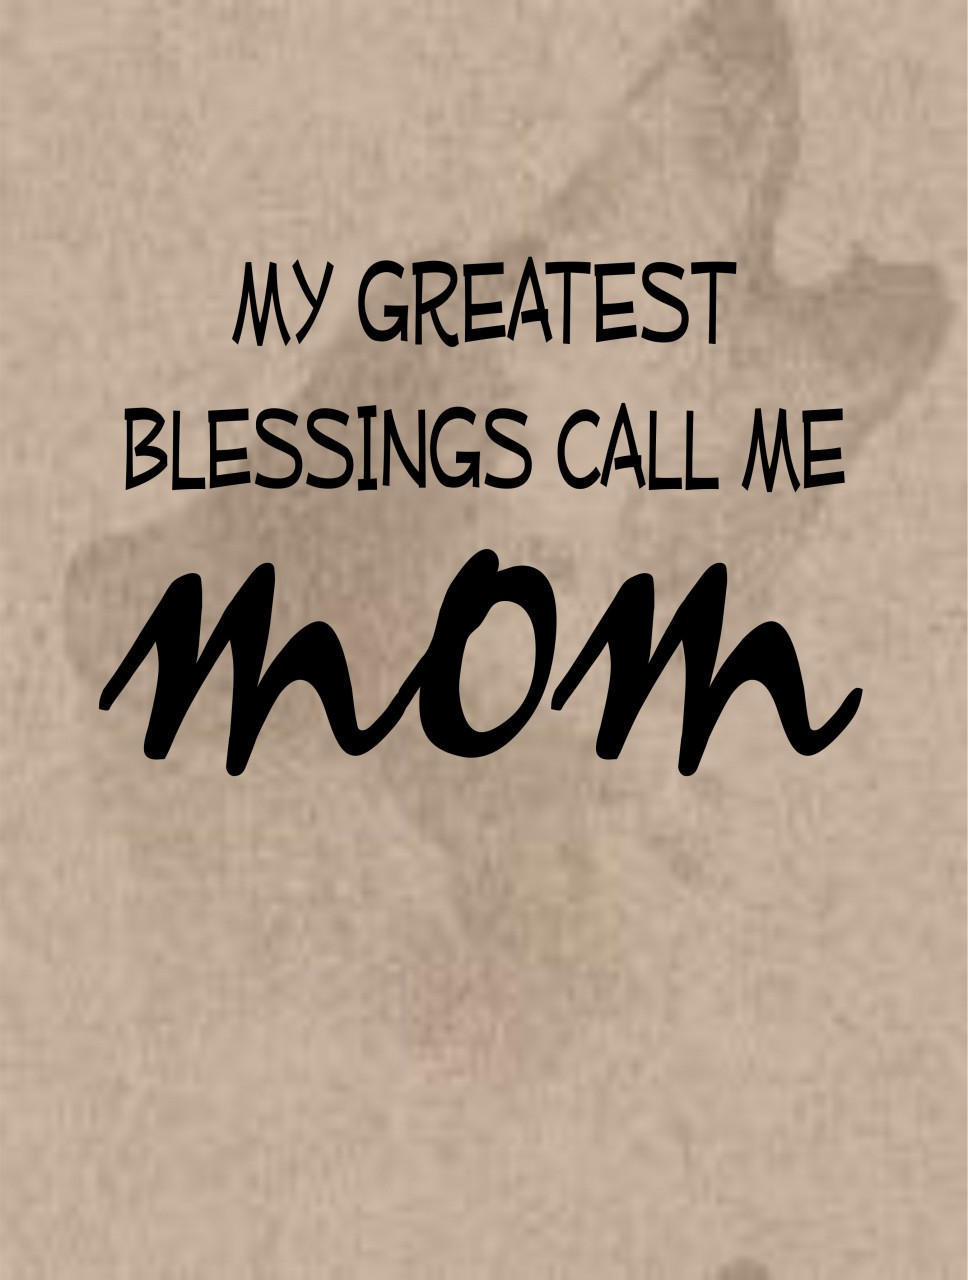 the blessings of being a mother Blessings of being a mother by seema chowdhury a mothers heart is like a safety deposit box where we keep all our joy pain and hope and above all our memories to cherish a mothers soul is tender .